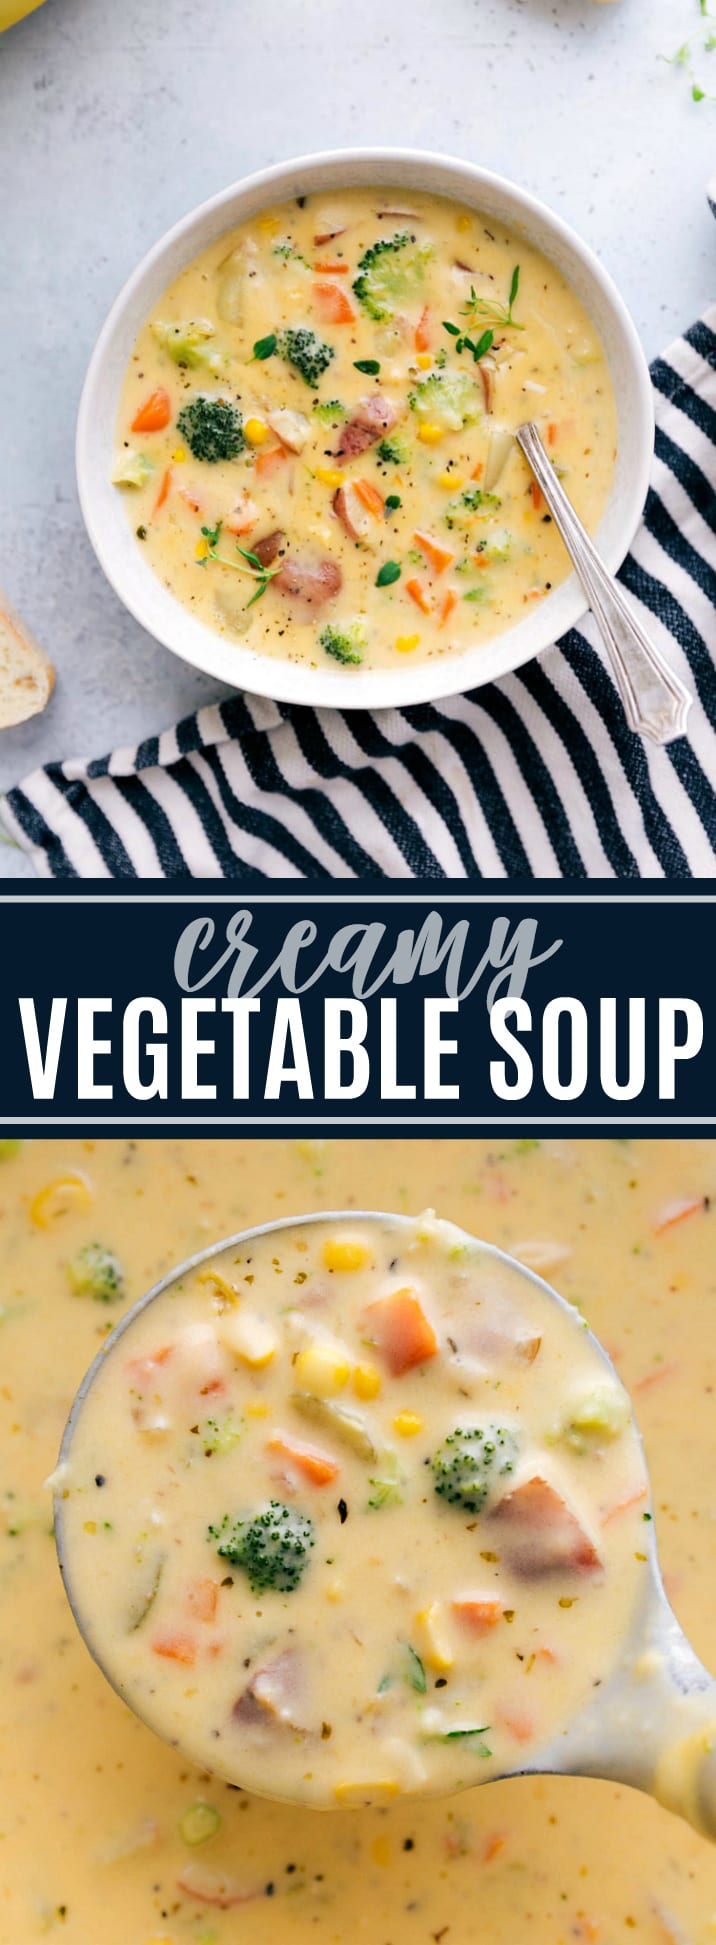 A delicious and easy-to-make creamy vegetable soup packed with veggies and healthy ingredients. via chelseasmessyapron.com #stovetop #easy #creamy #vegetable #soup #quick #simple #cheese #broccoli #corn #recipe #kidfriendly #dinner #meal